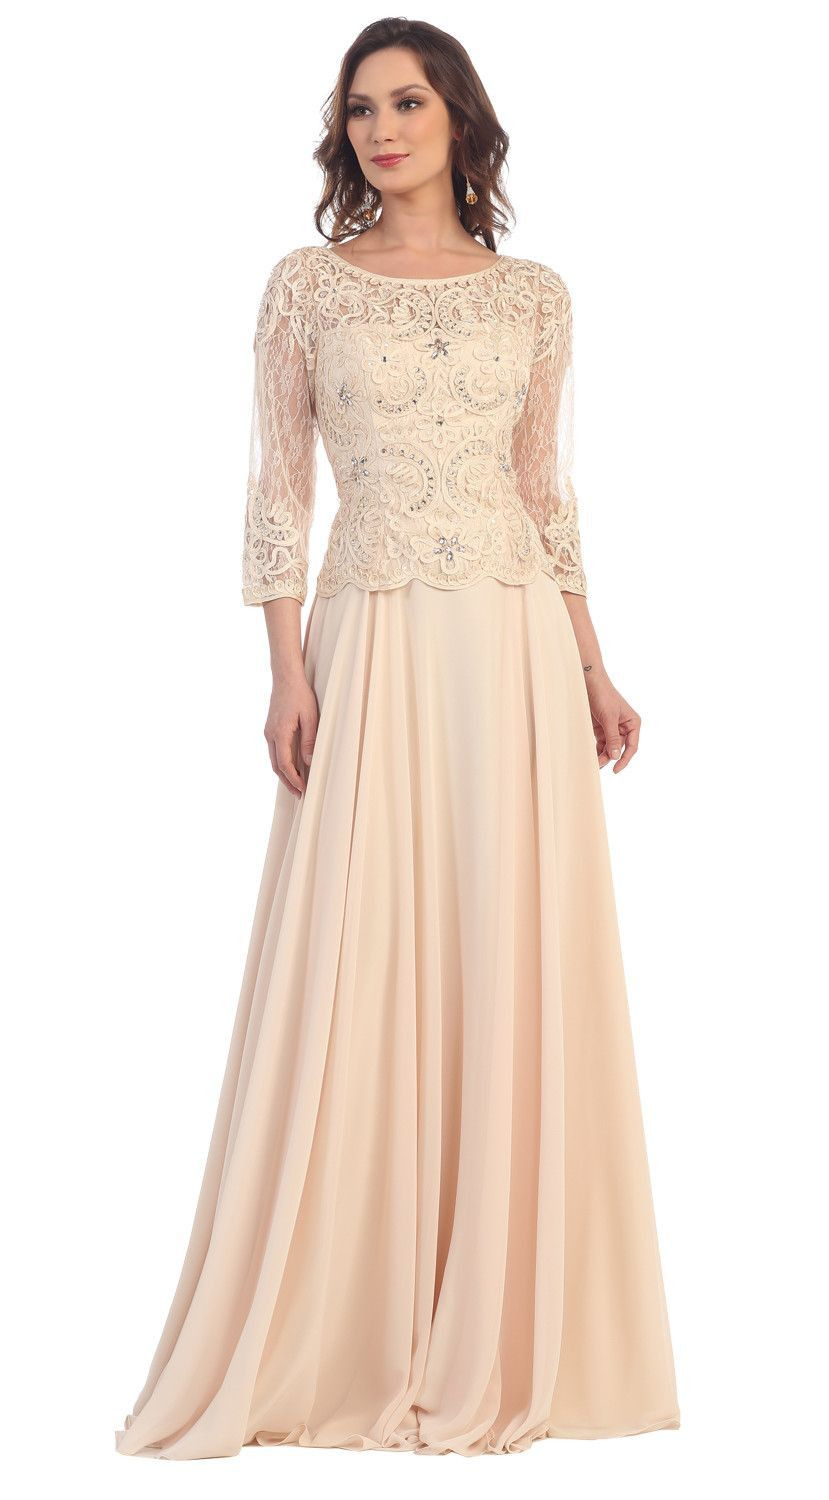 a5f2cab84c48 Mother of the Bride Long Dress Plus Size Formal Evening Gown Groom-The  Dress Outlet